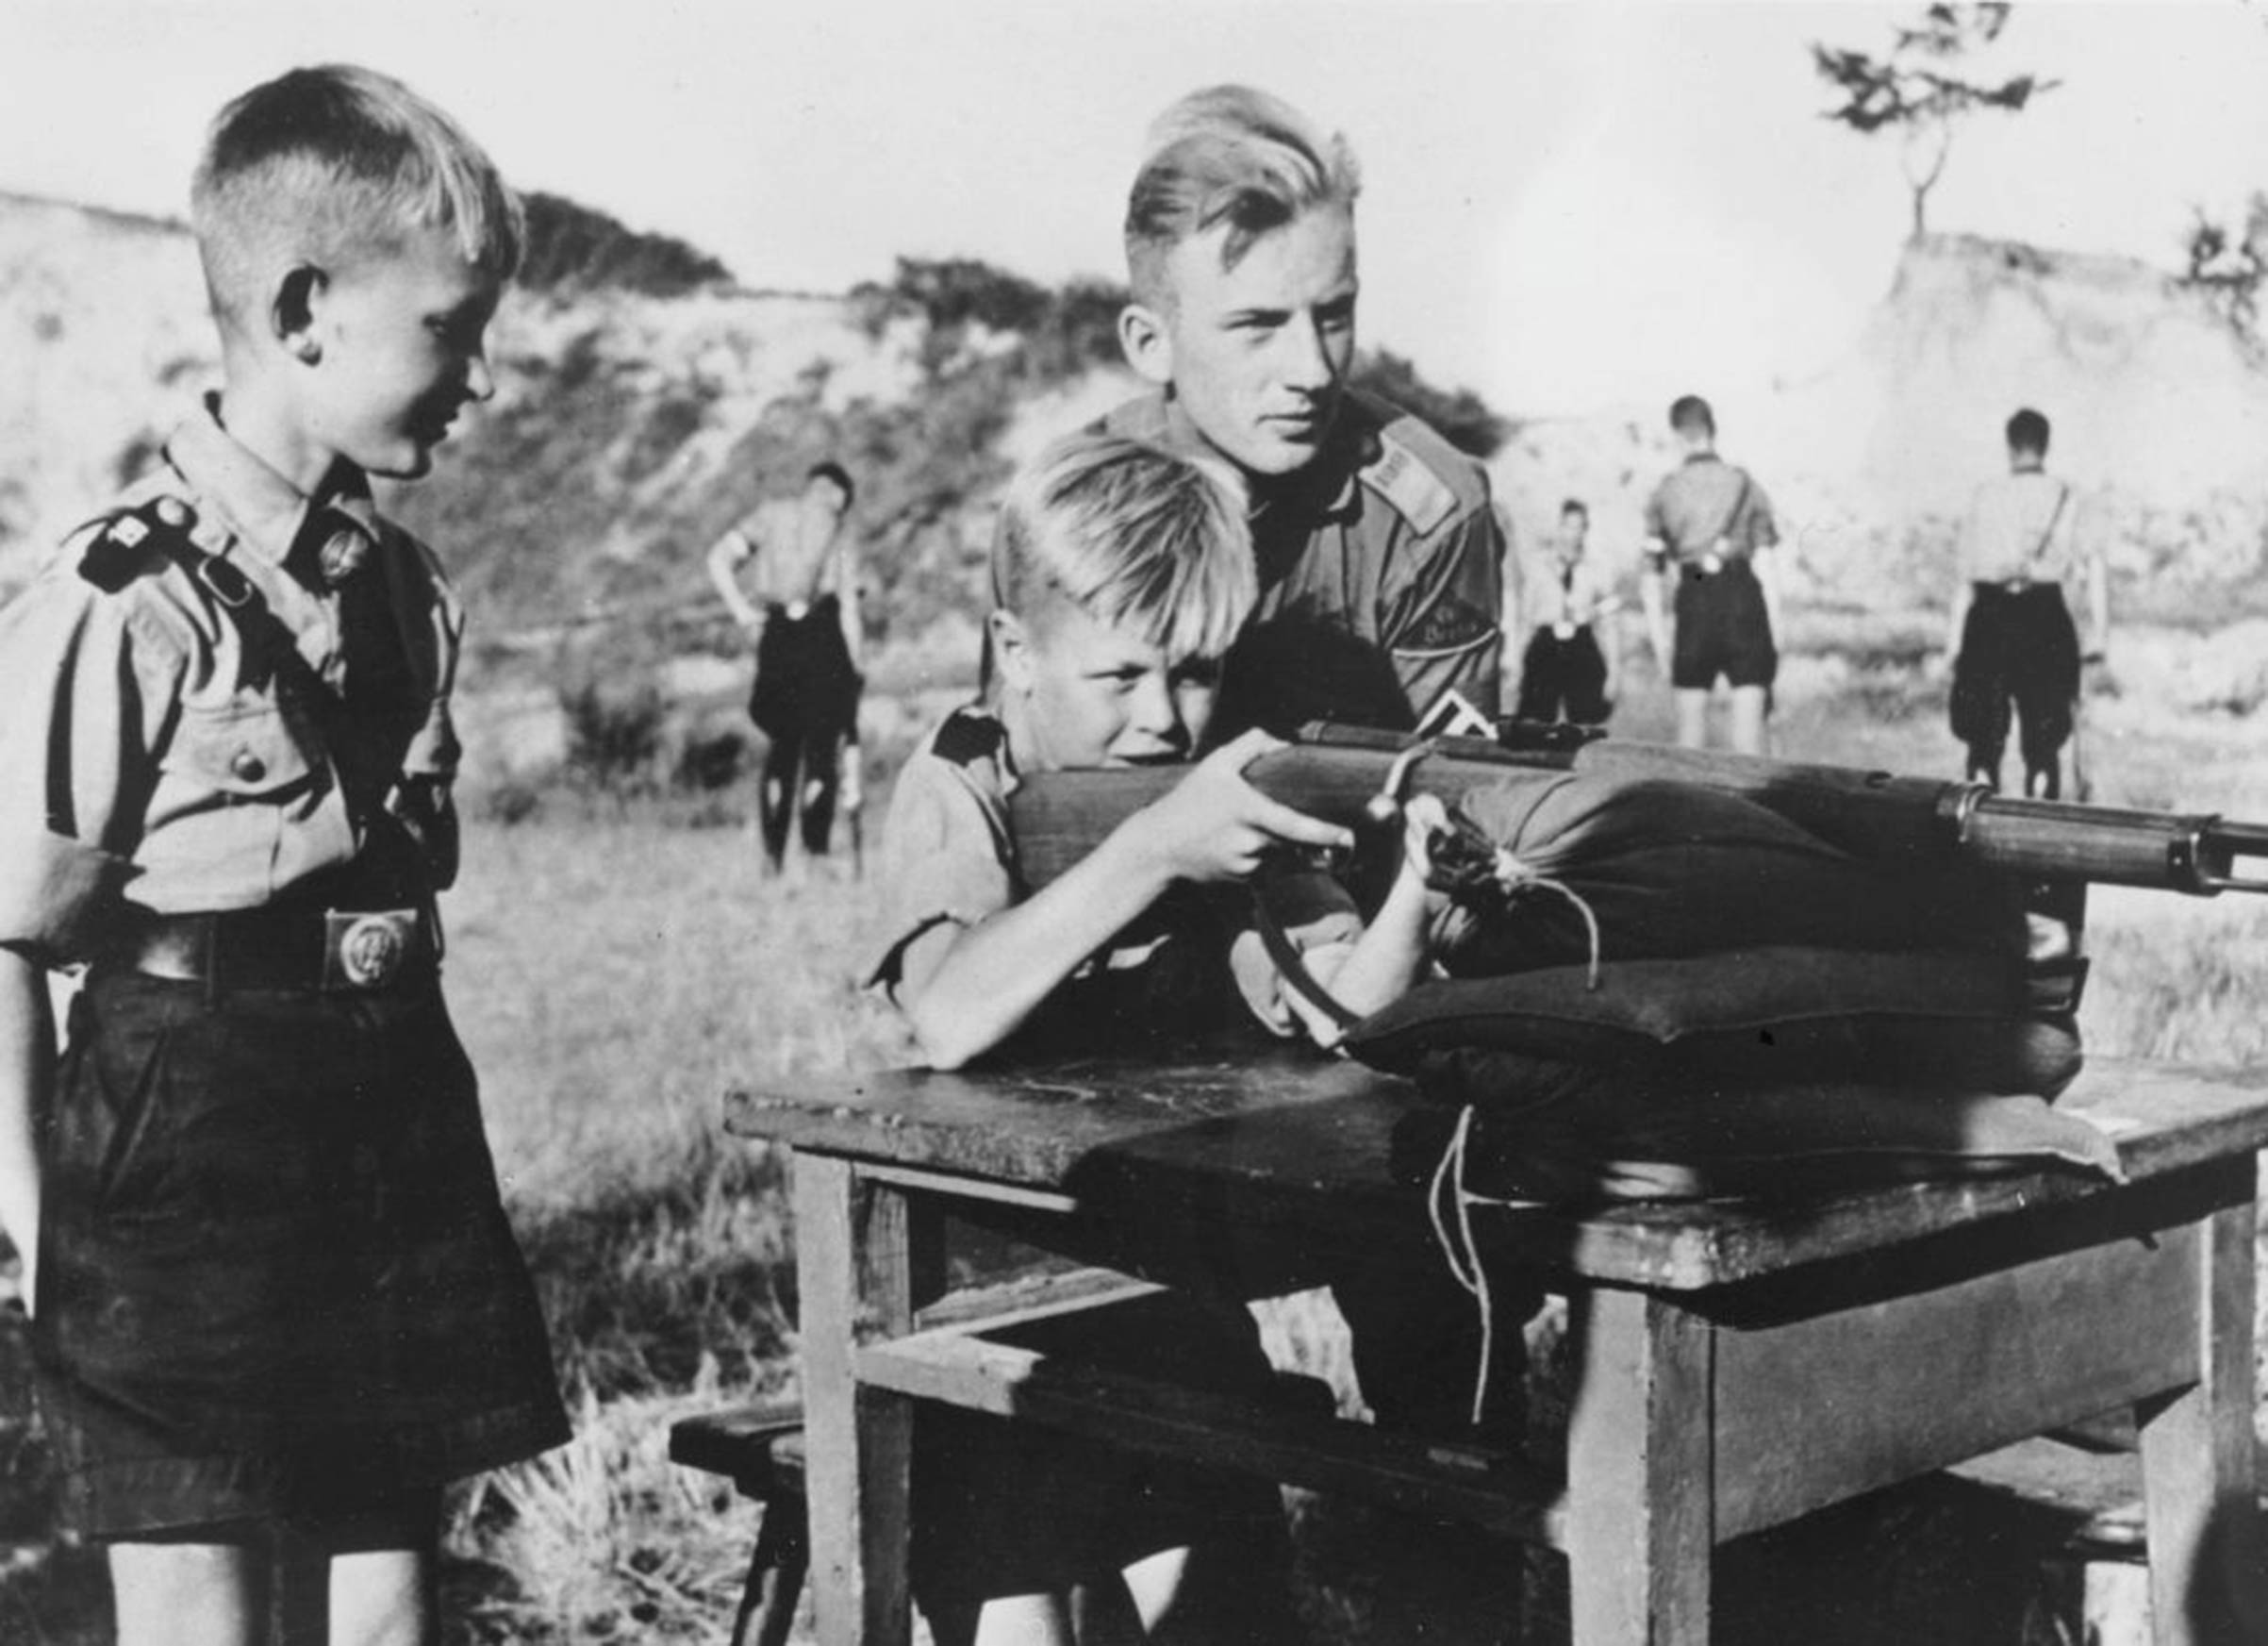 Eleven-year-old boys in the Hitler Youth organization learning how to fire a rifle.